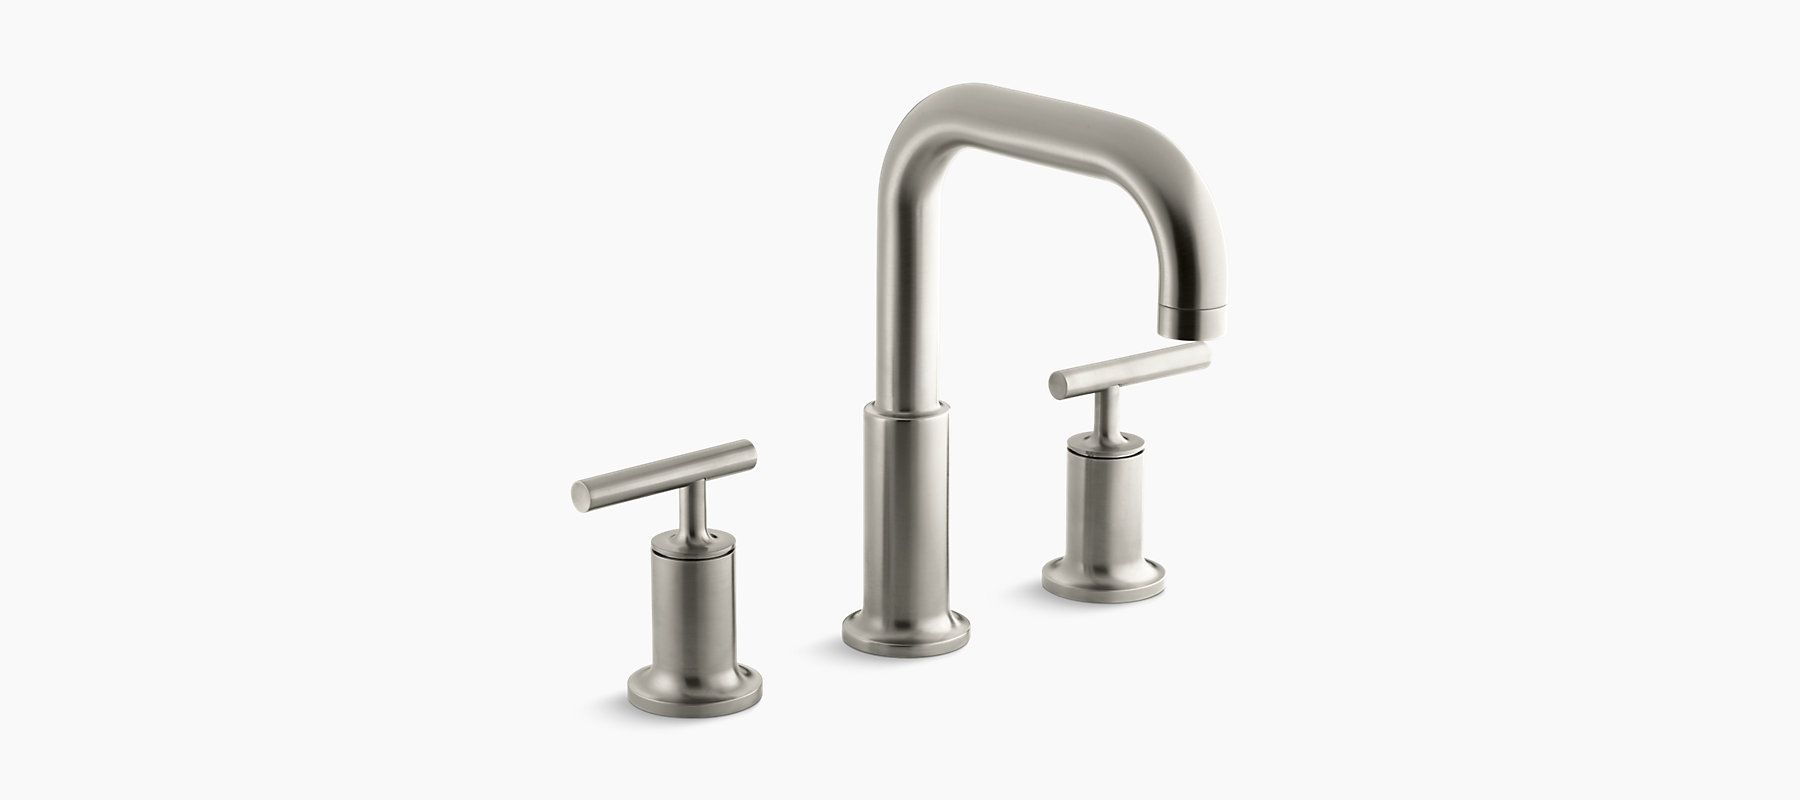 The K-T14428-4 bath faucet trim includes a gooseneck spout and two ...